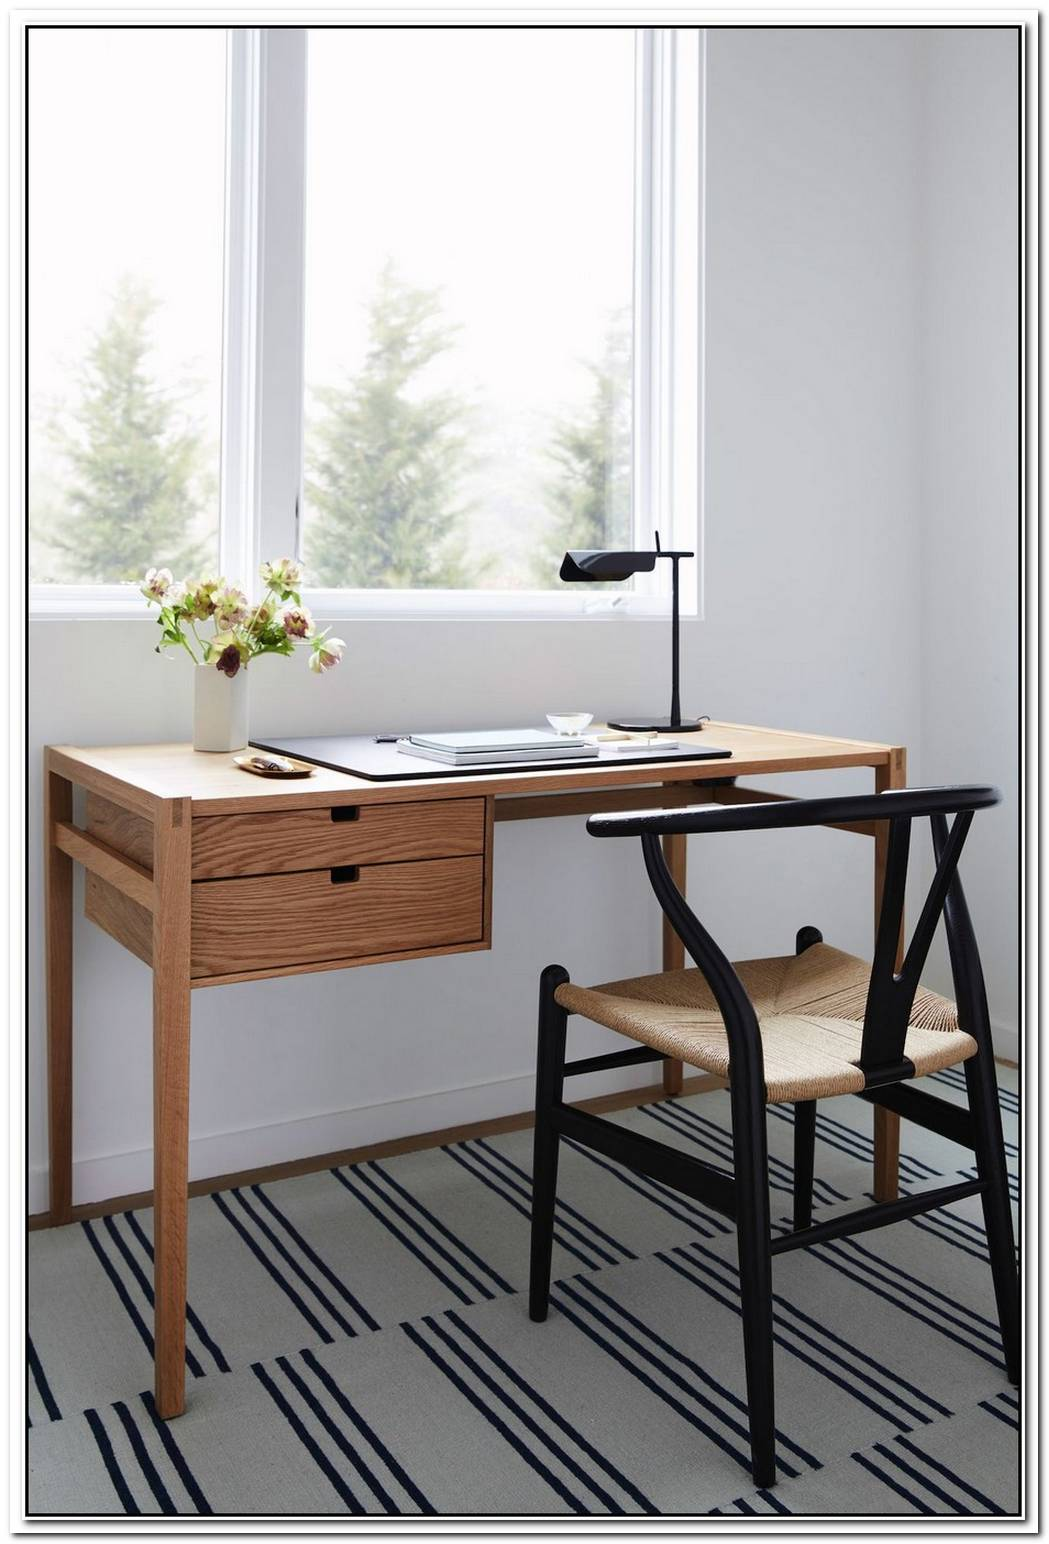 Hybrid Workspace And Console Table By Margaux Keller